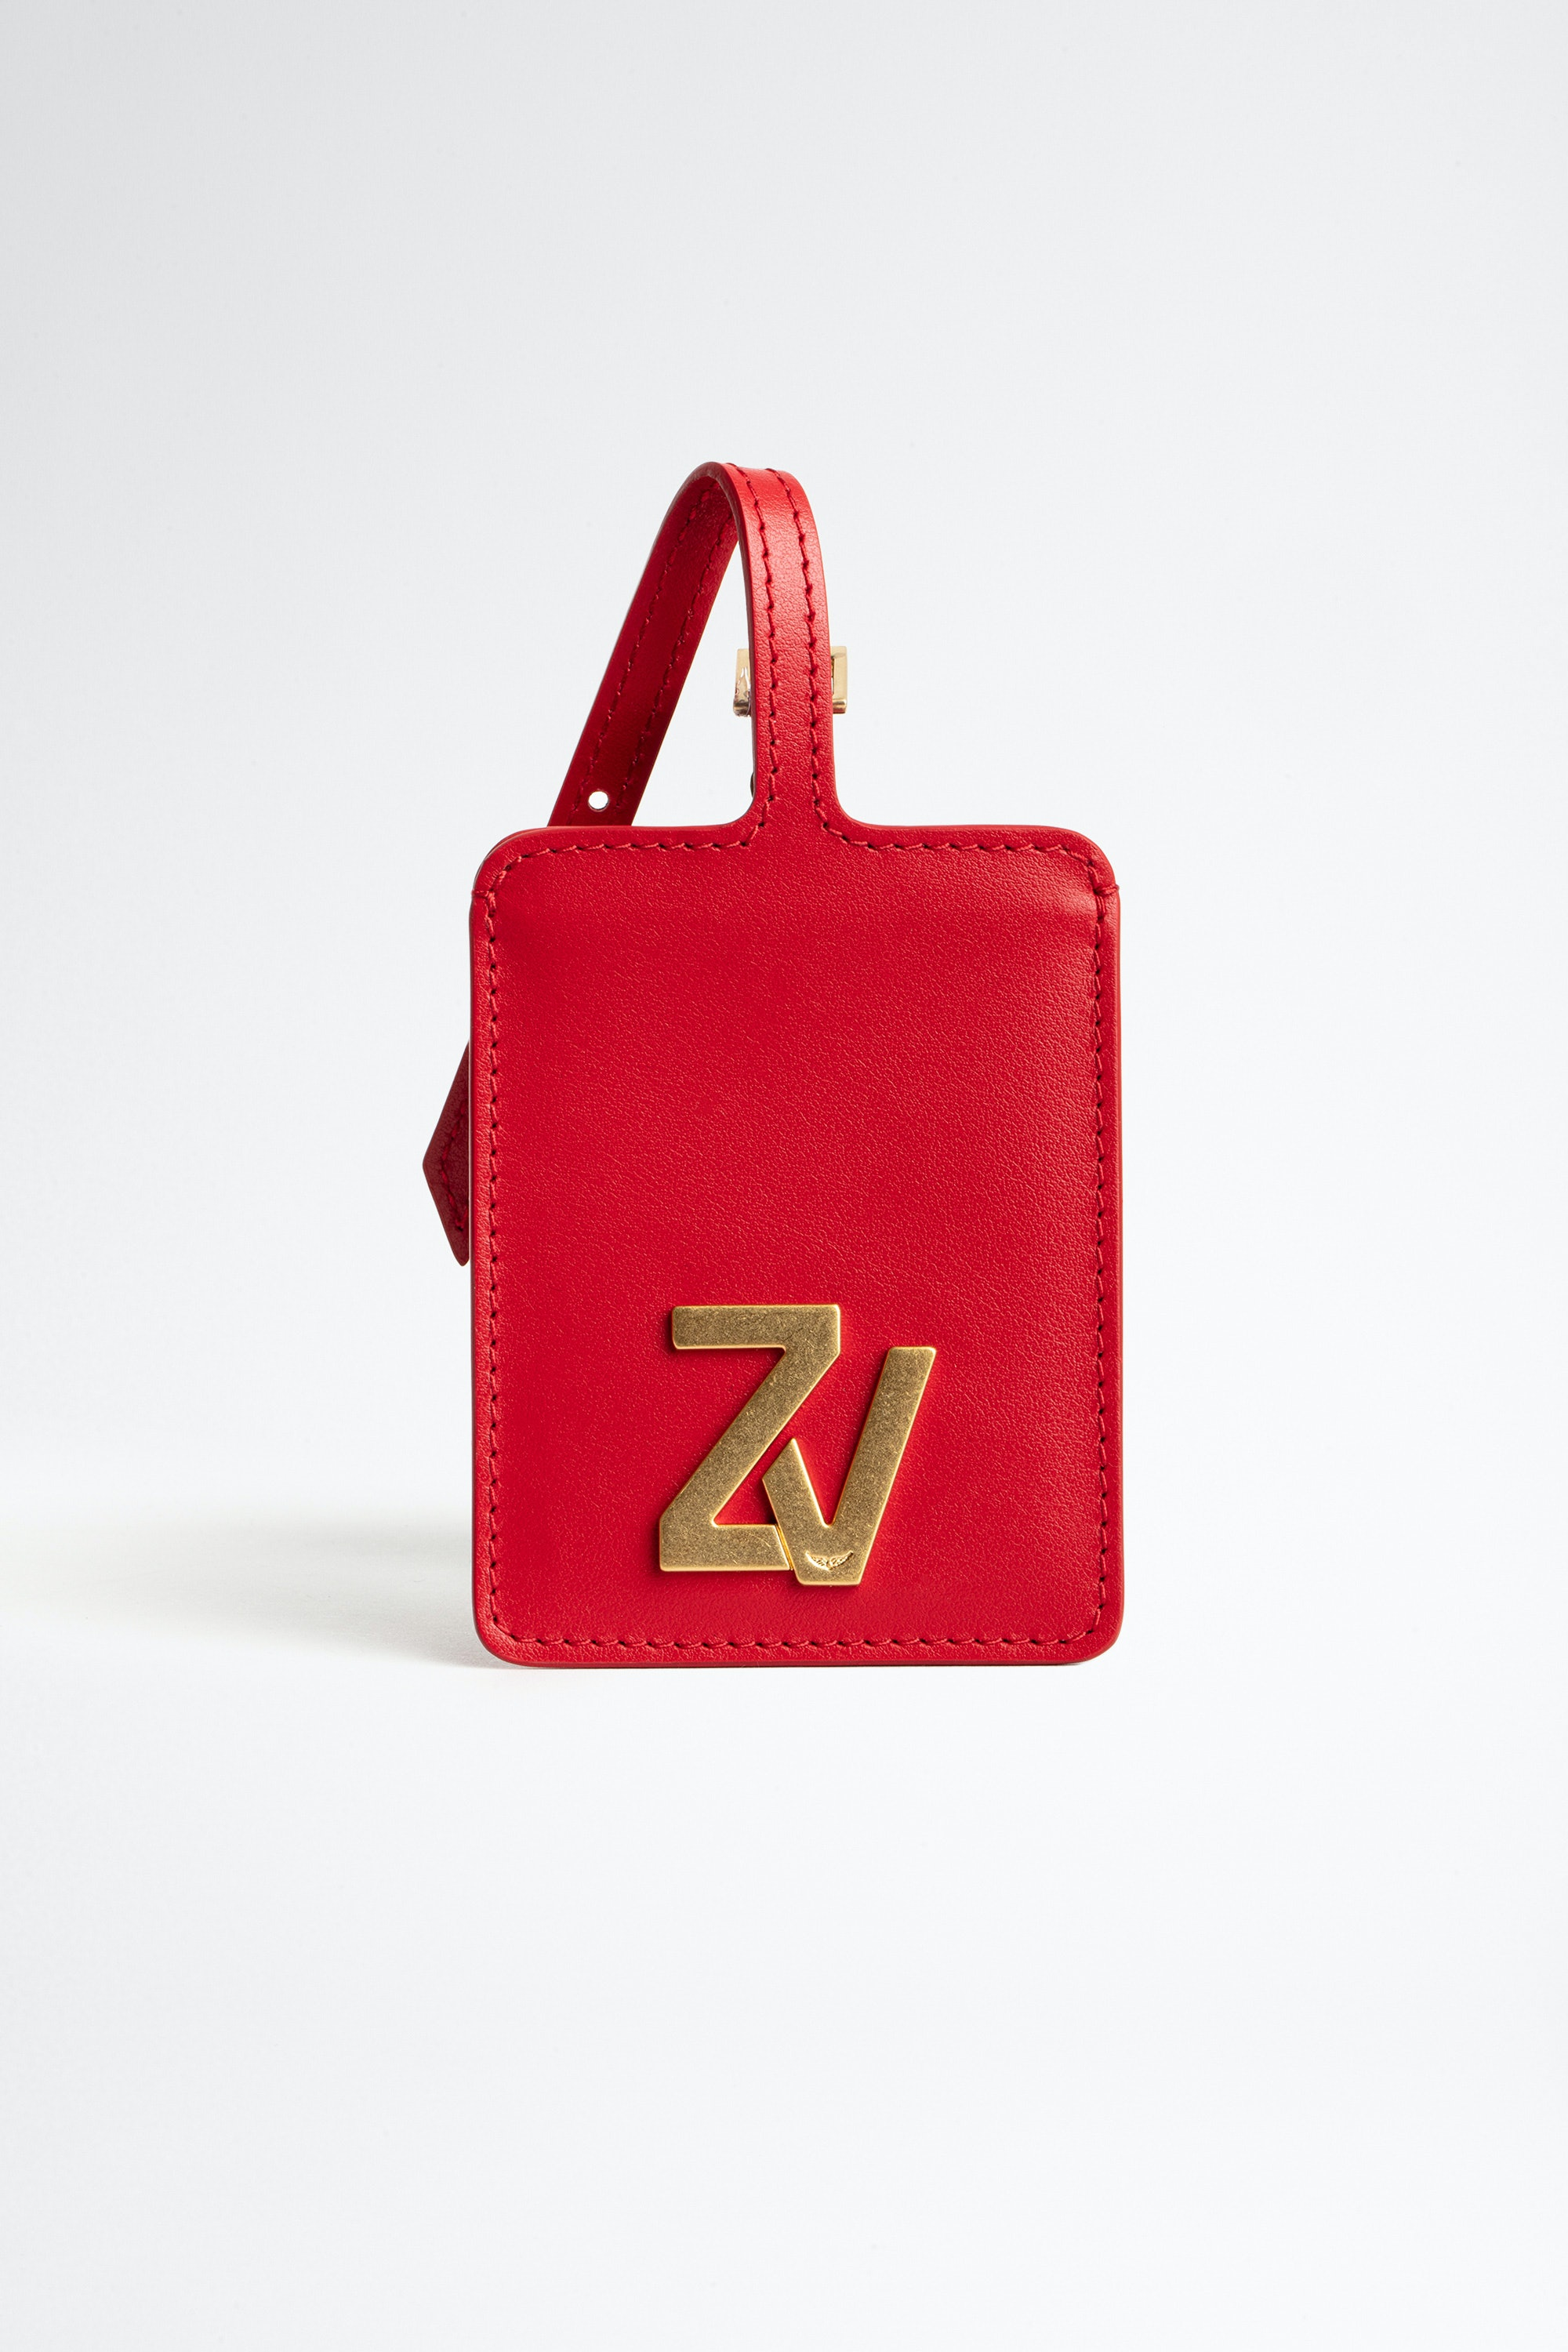 Etiquette Bagage ZV Initiale Le Luggage